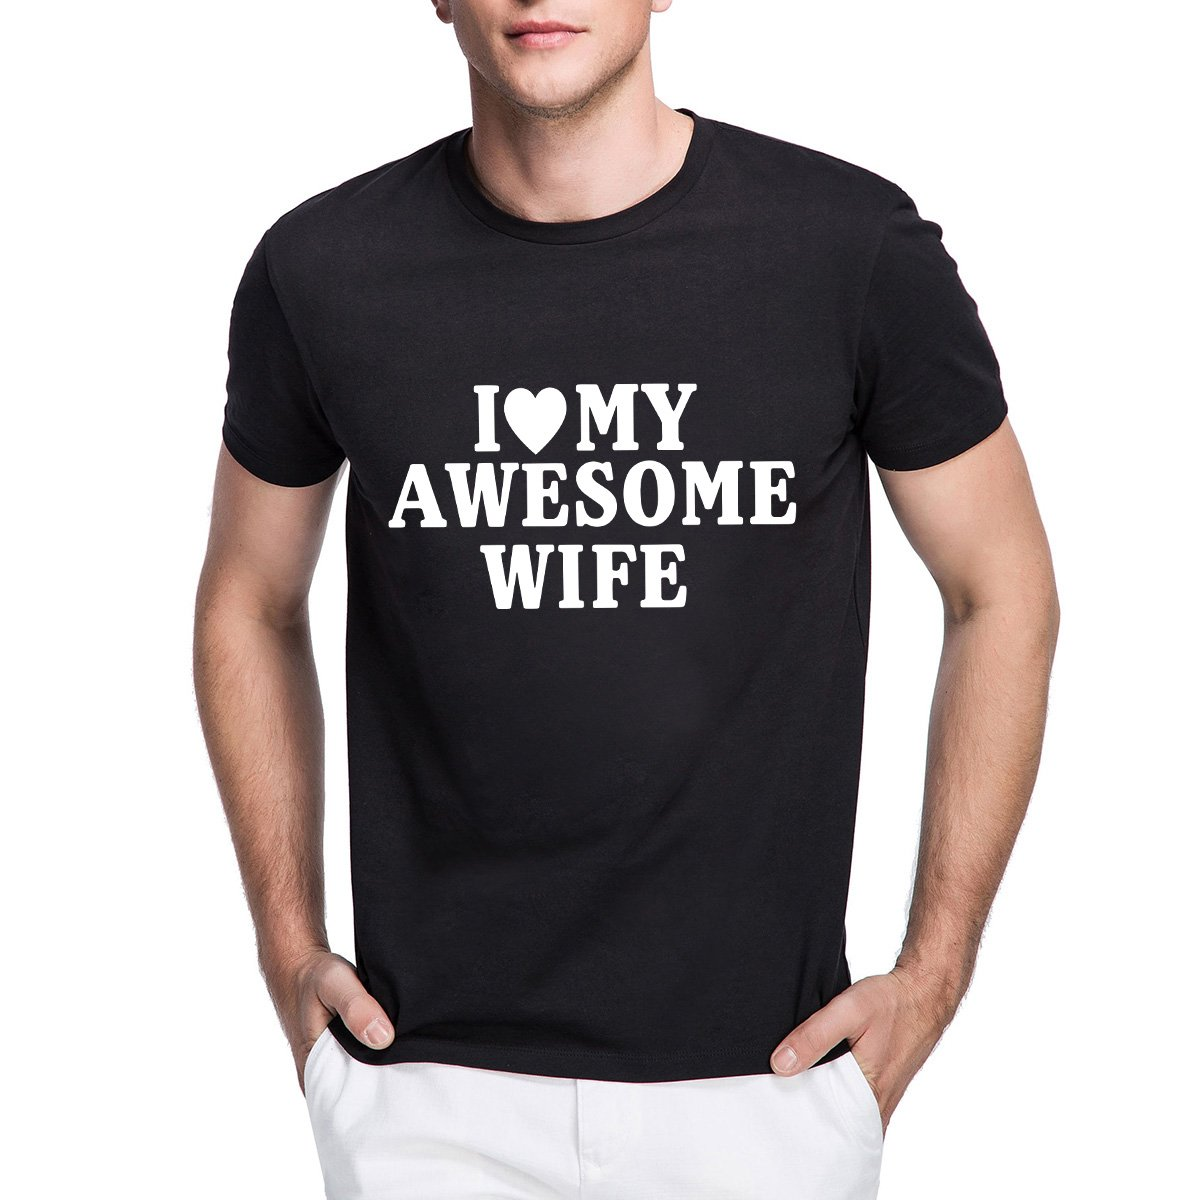 Loo Show S I Heart My Awesome Wife Funny T Shirt With